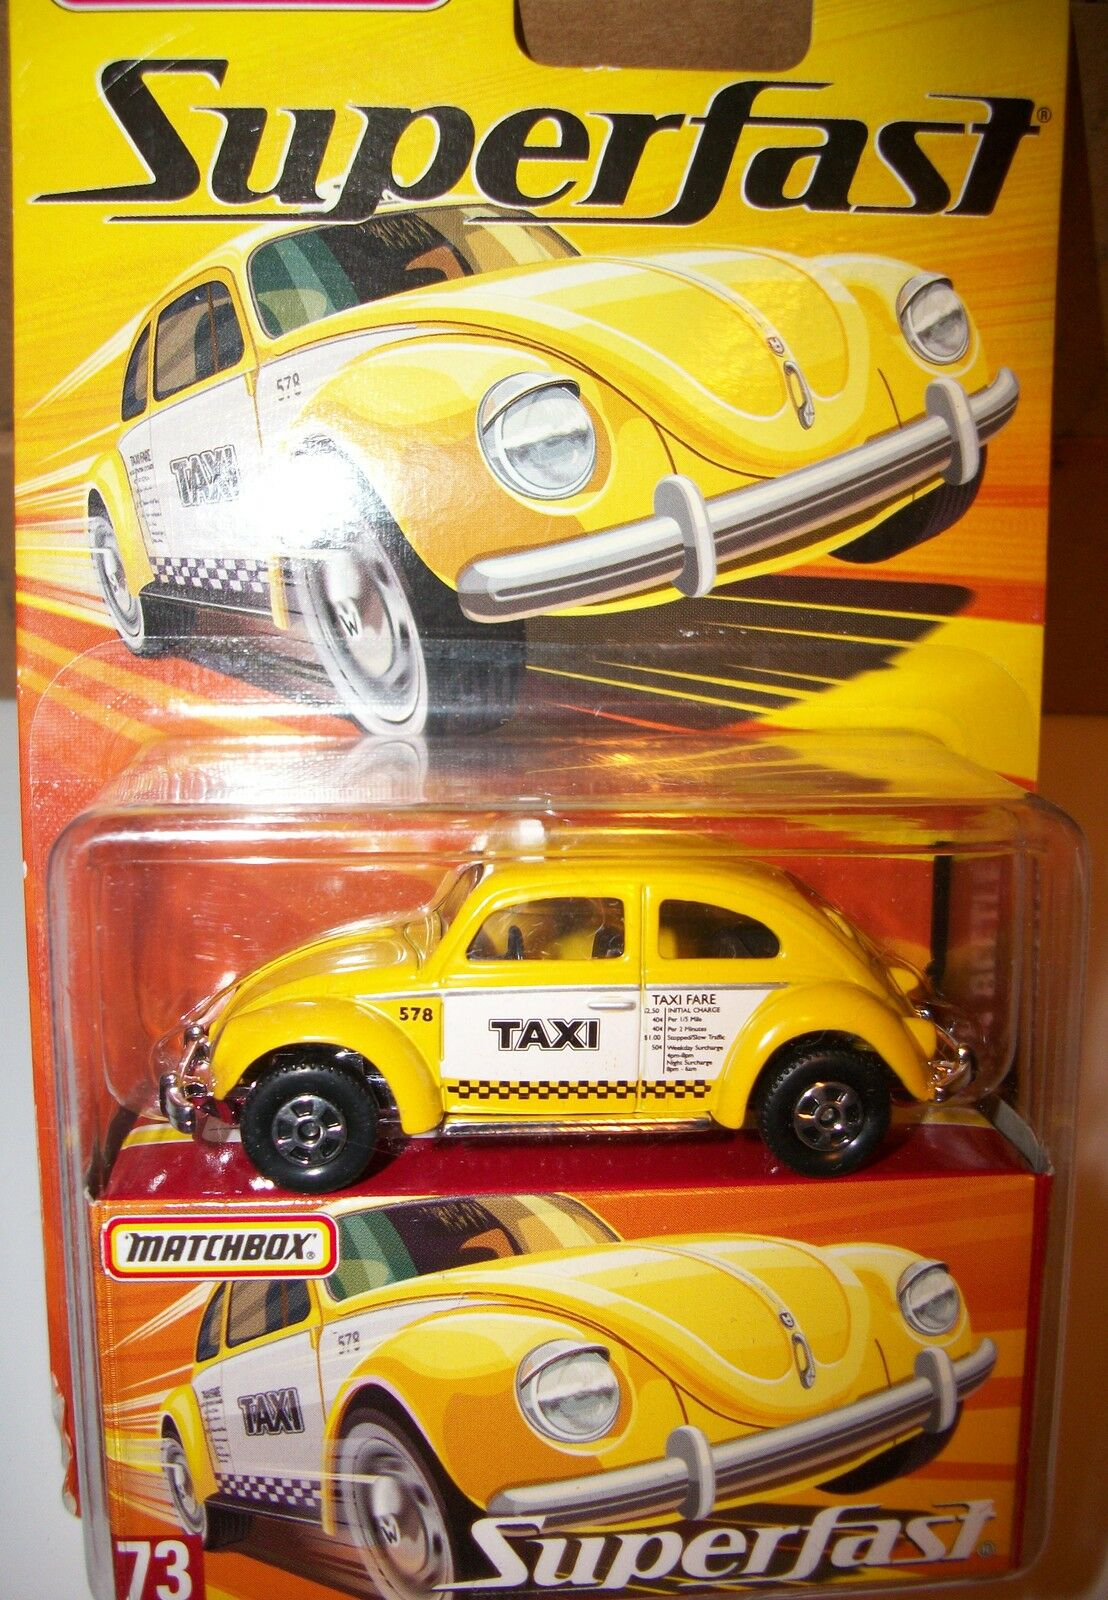 10 cars Matchbox VW Beetles  Old School style , all MOC, all different